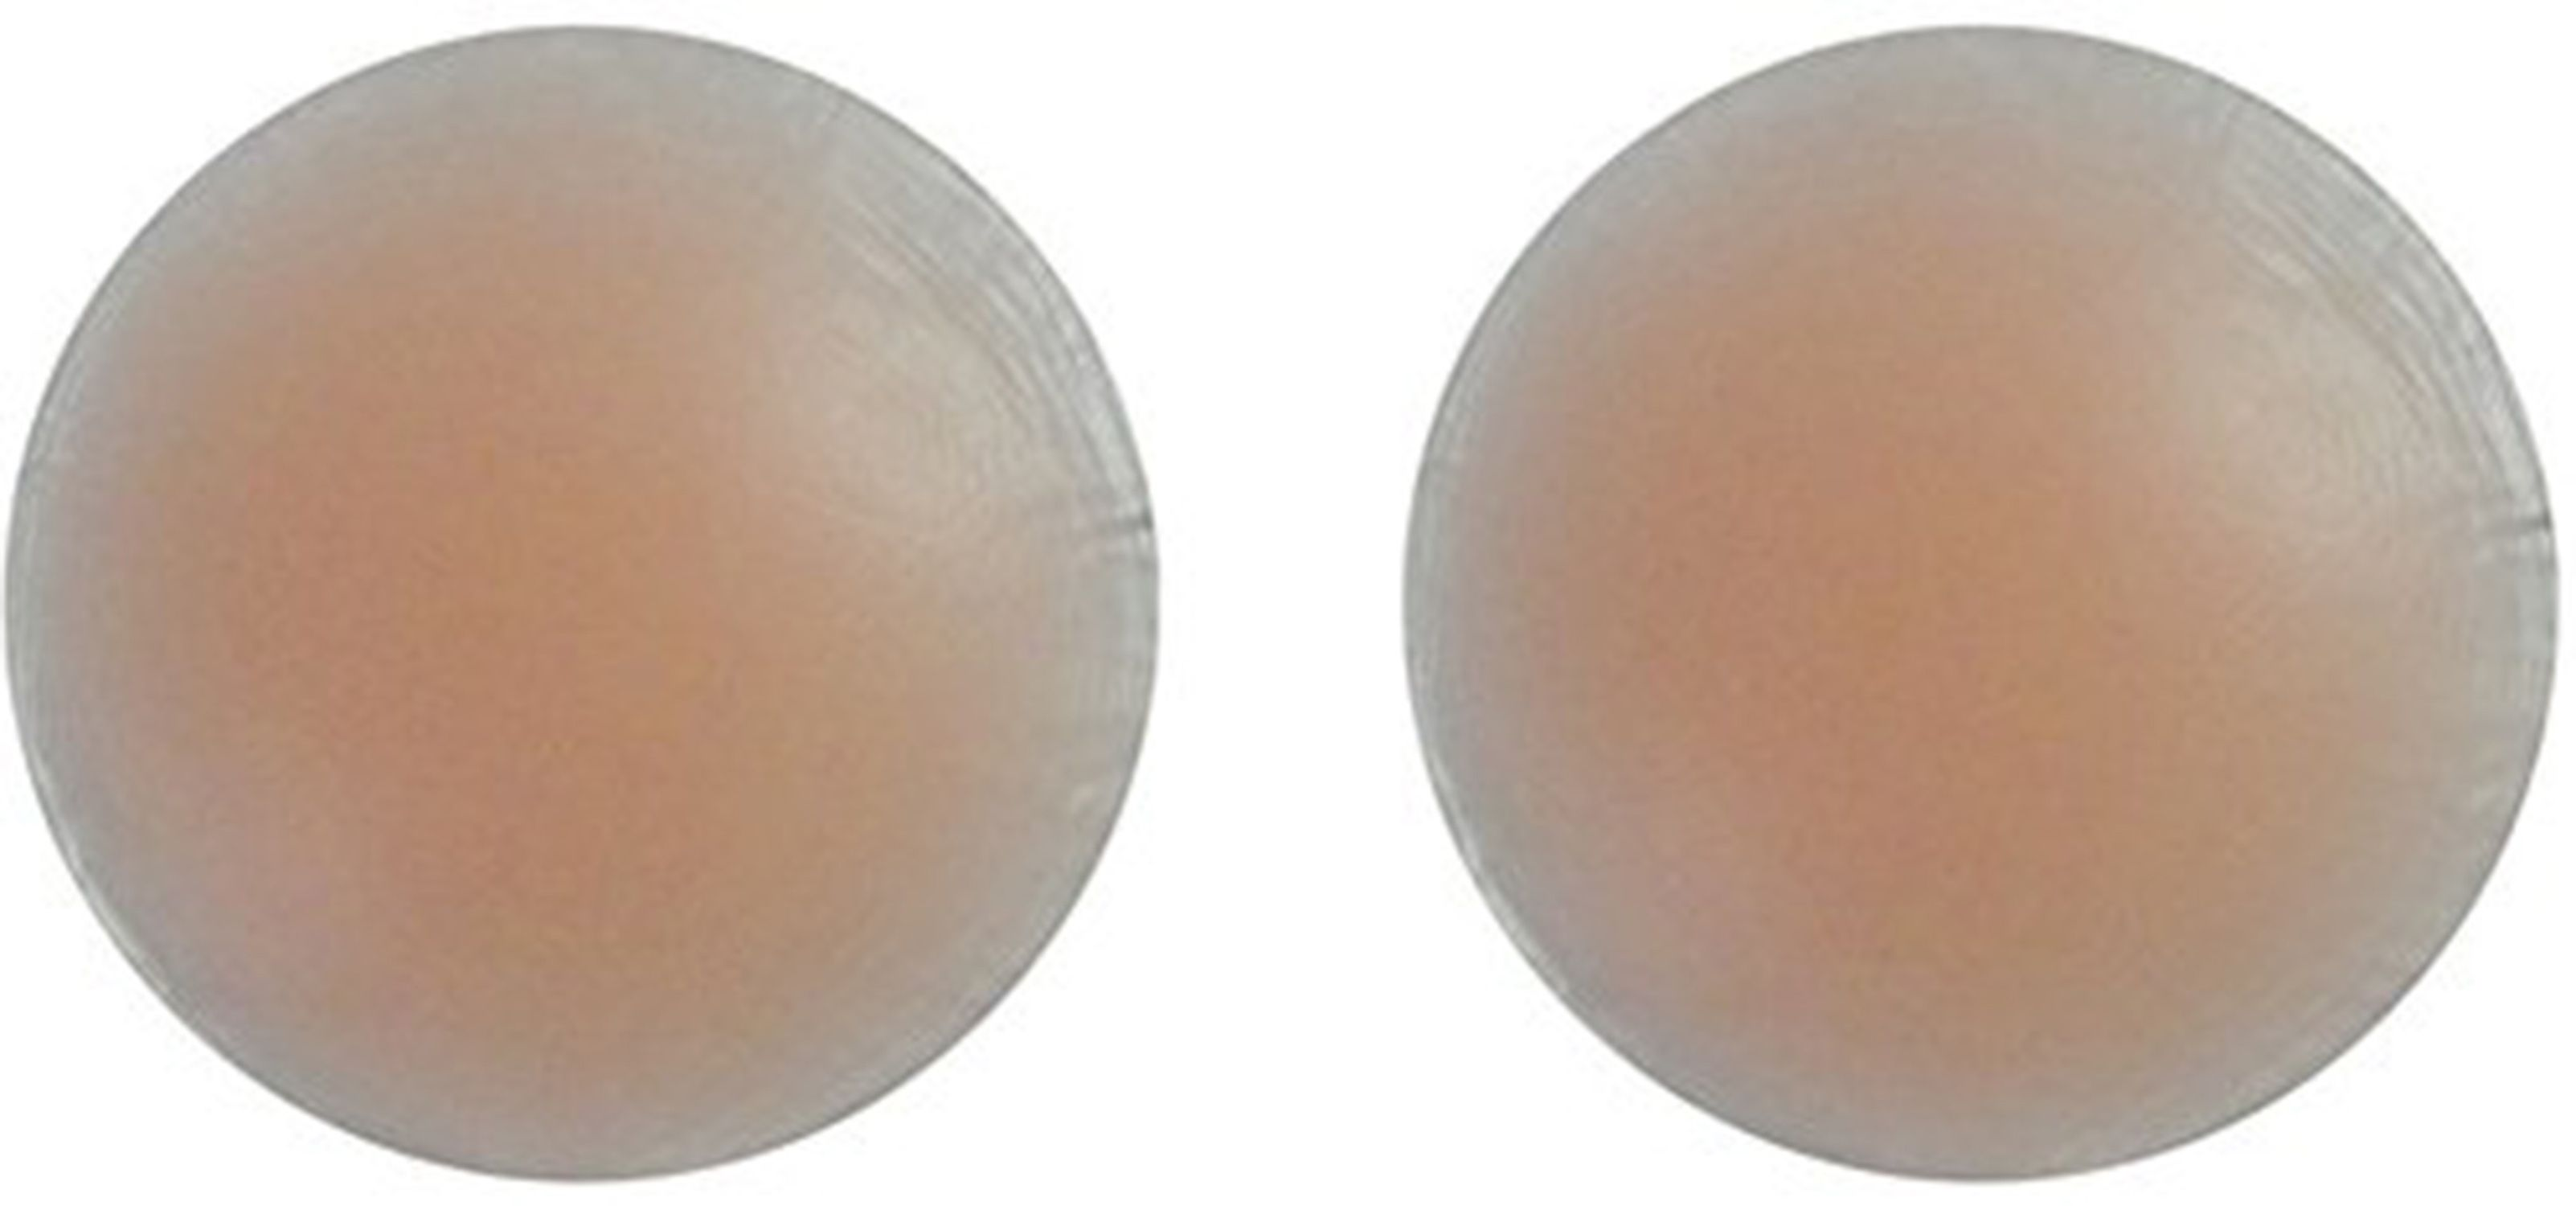 OXTER Presents Beige Color Silicone Nipple Cover